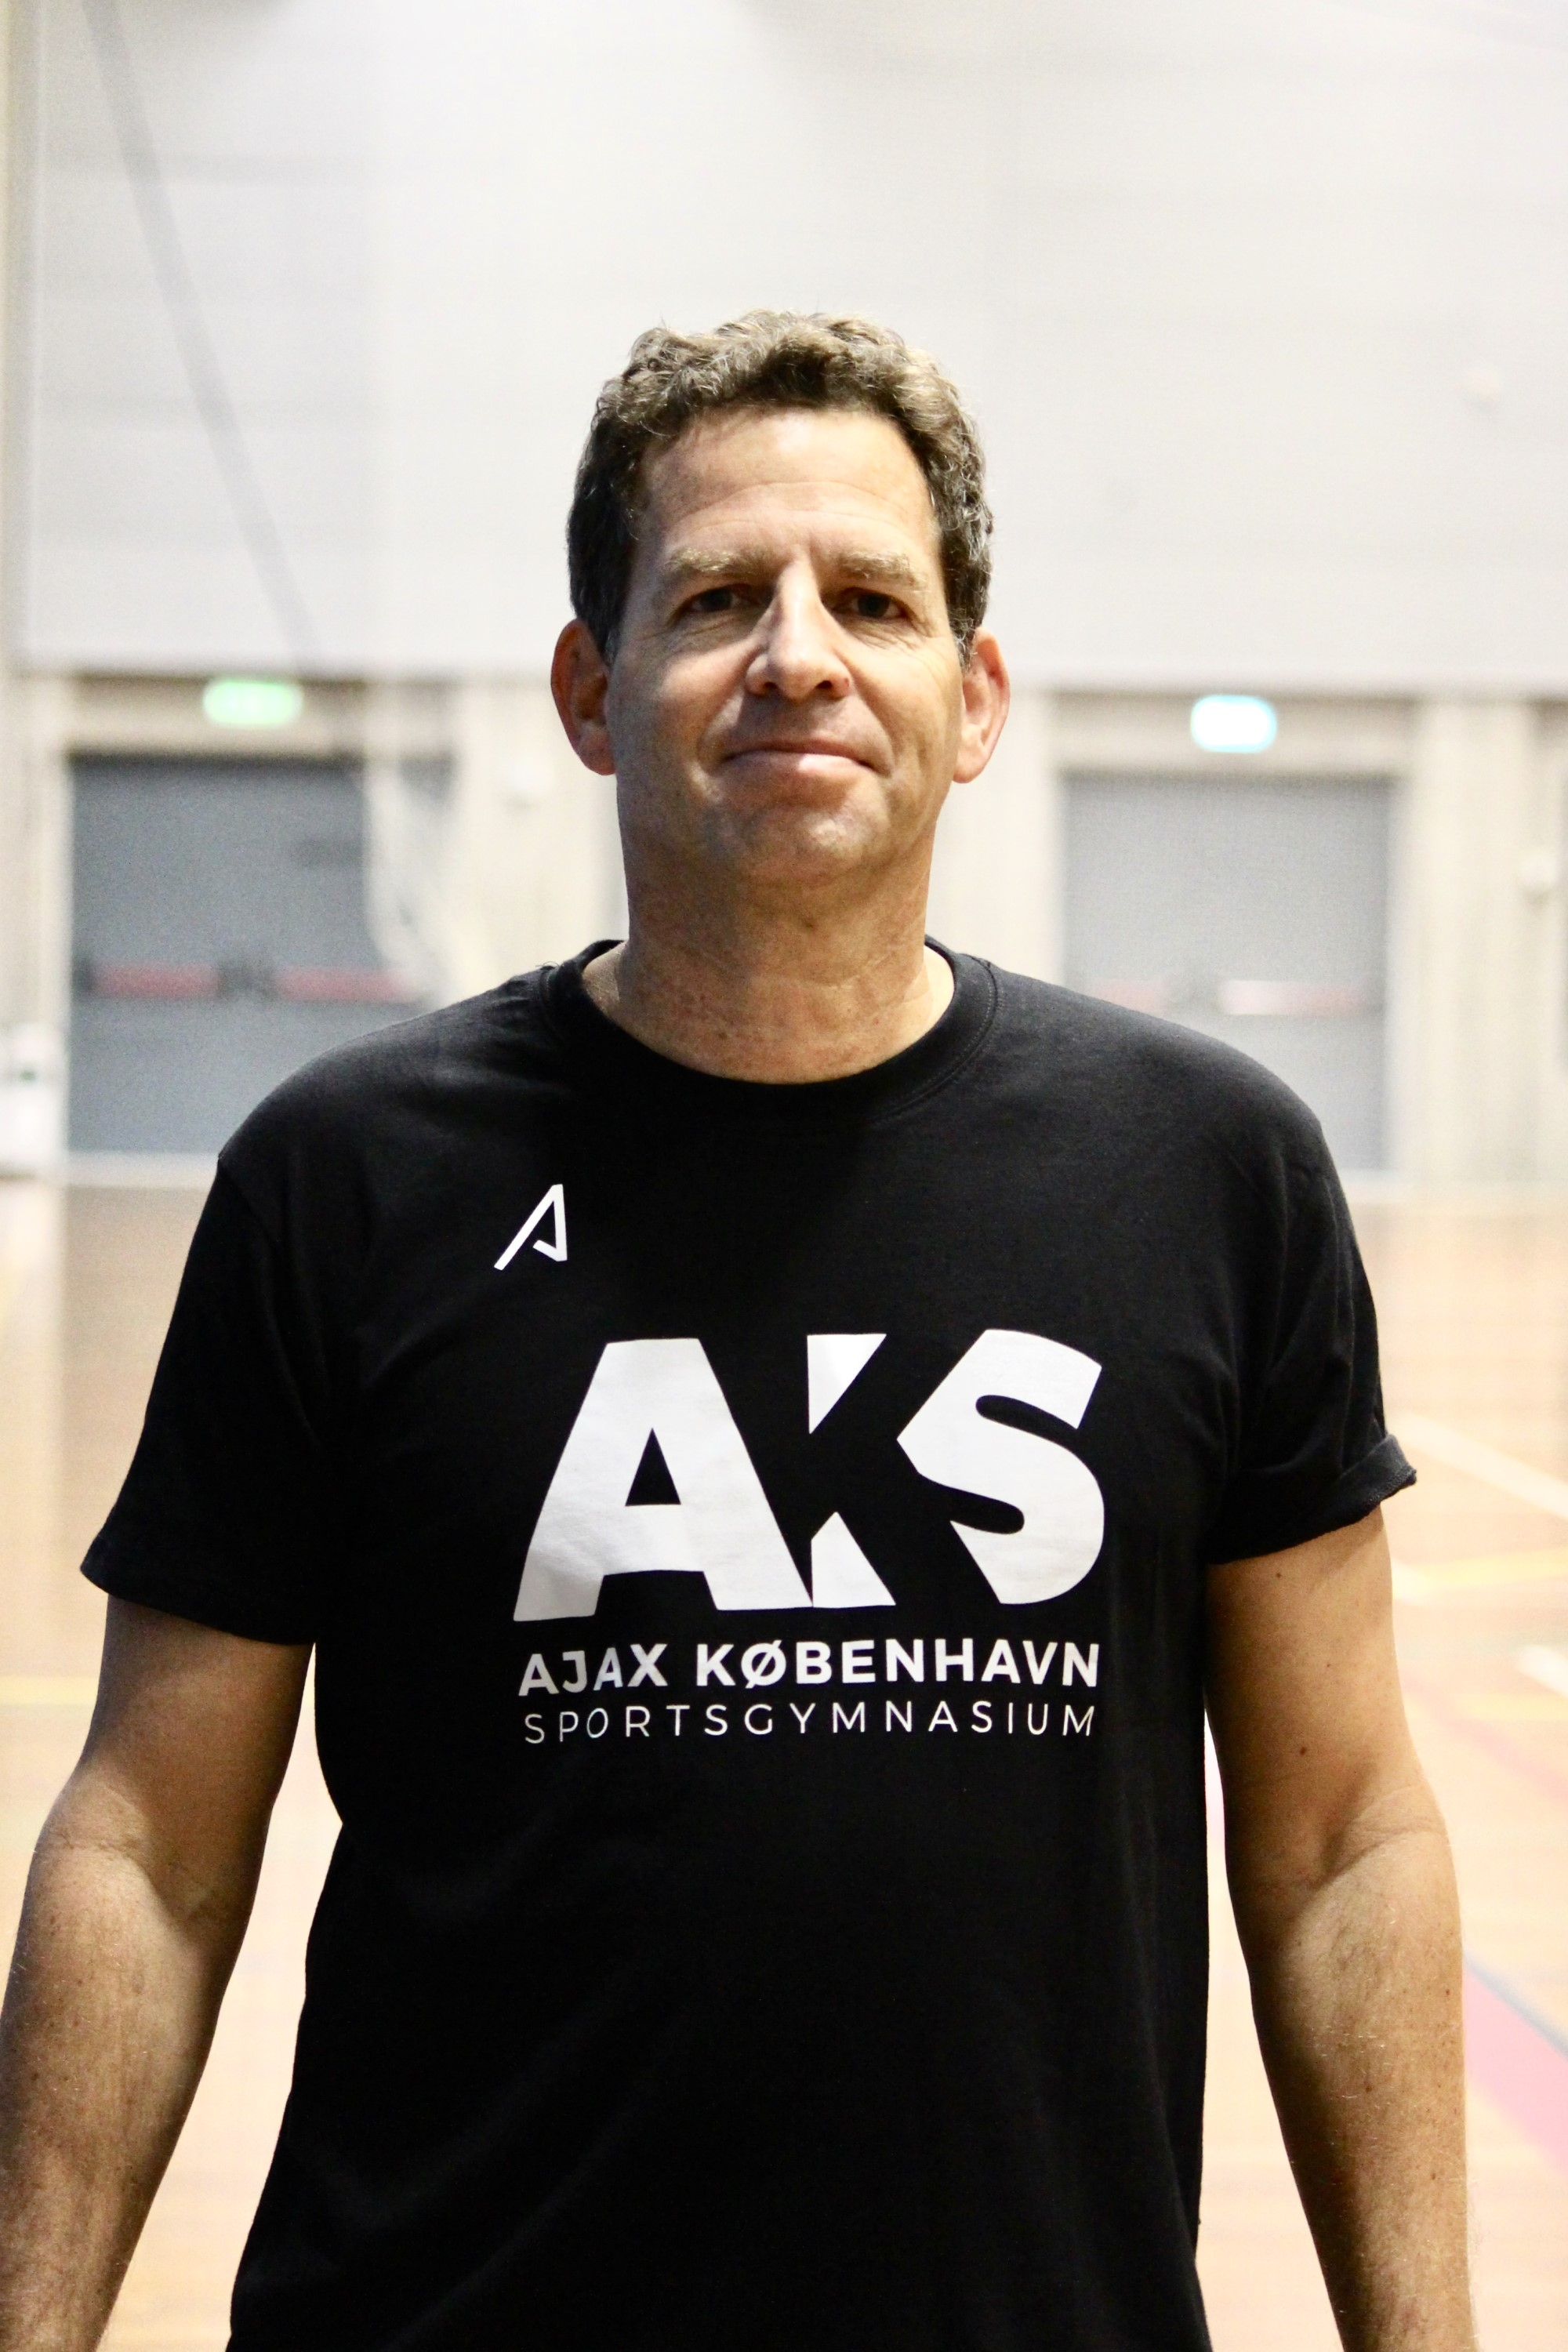 Erez Bittmann, head coach for AKS basketball